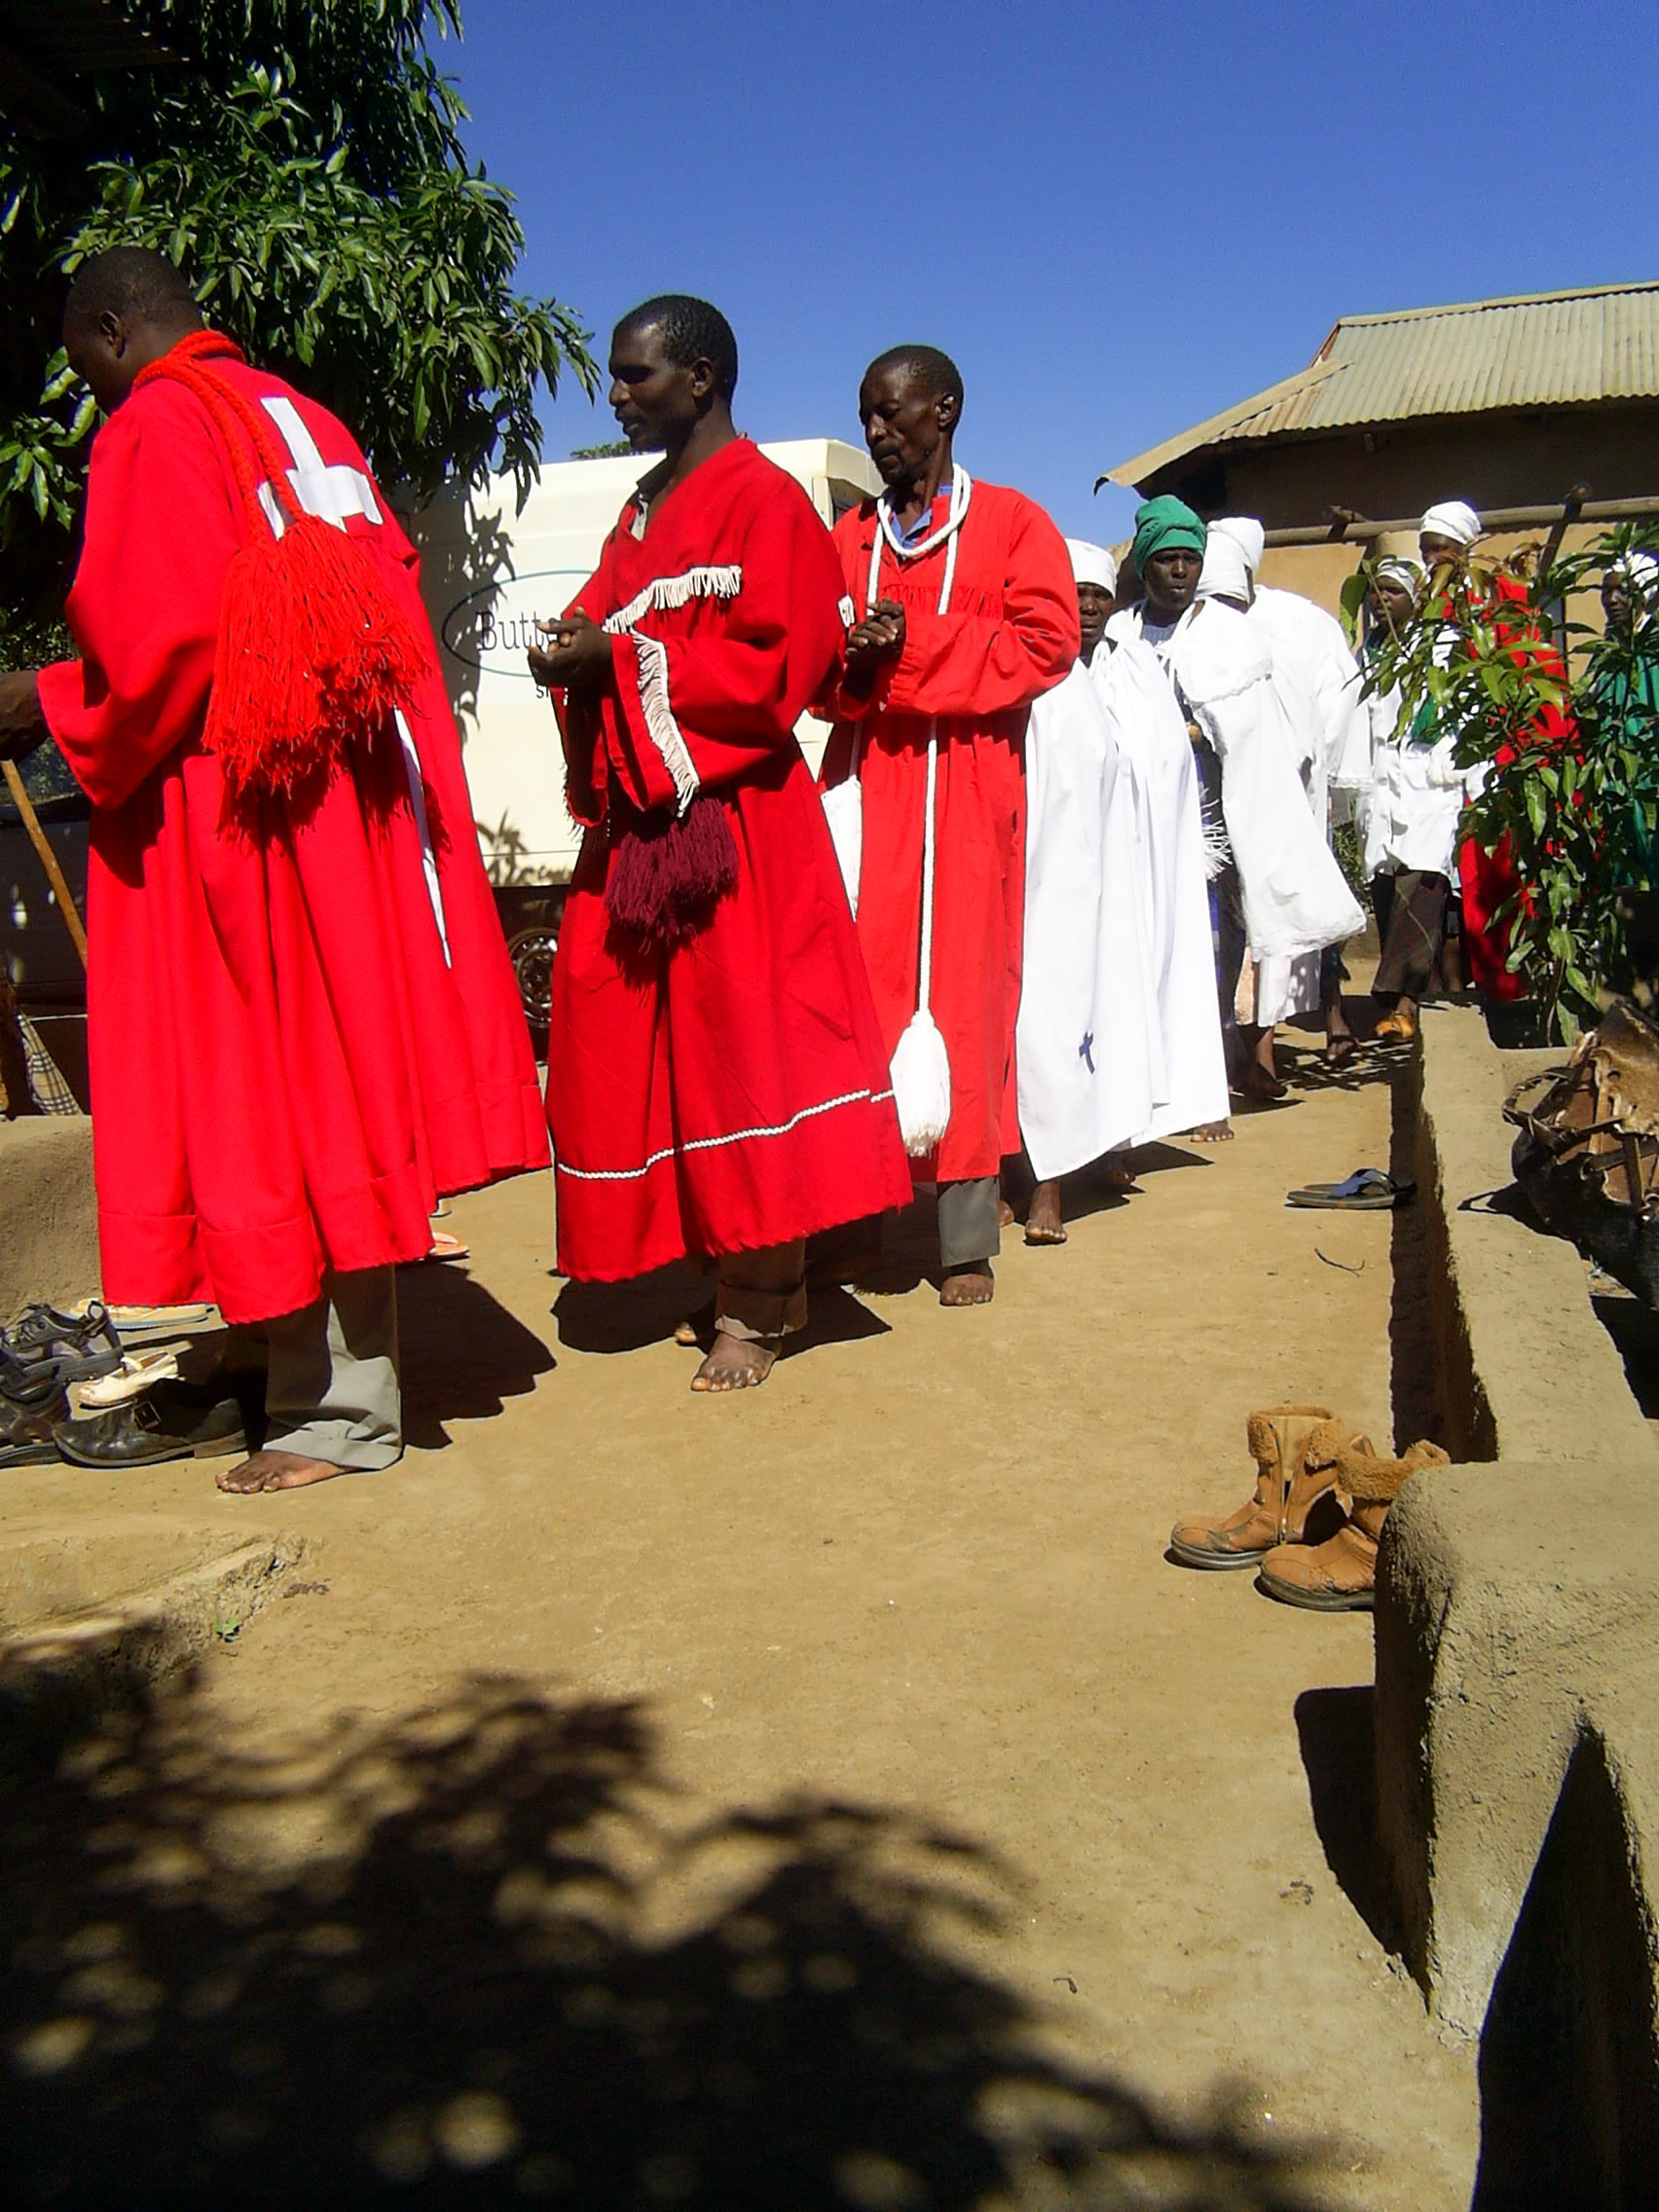 Venda Local Independant Church Service